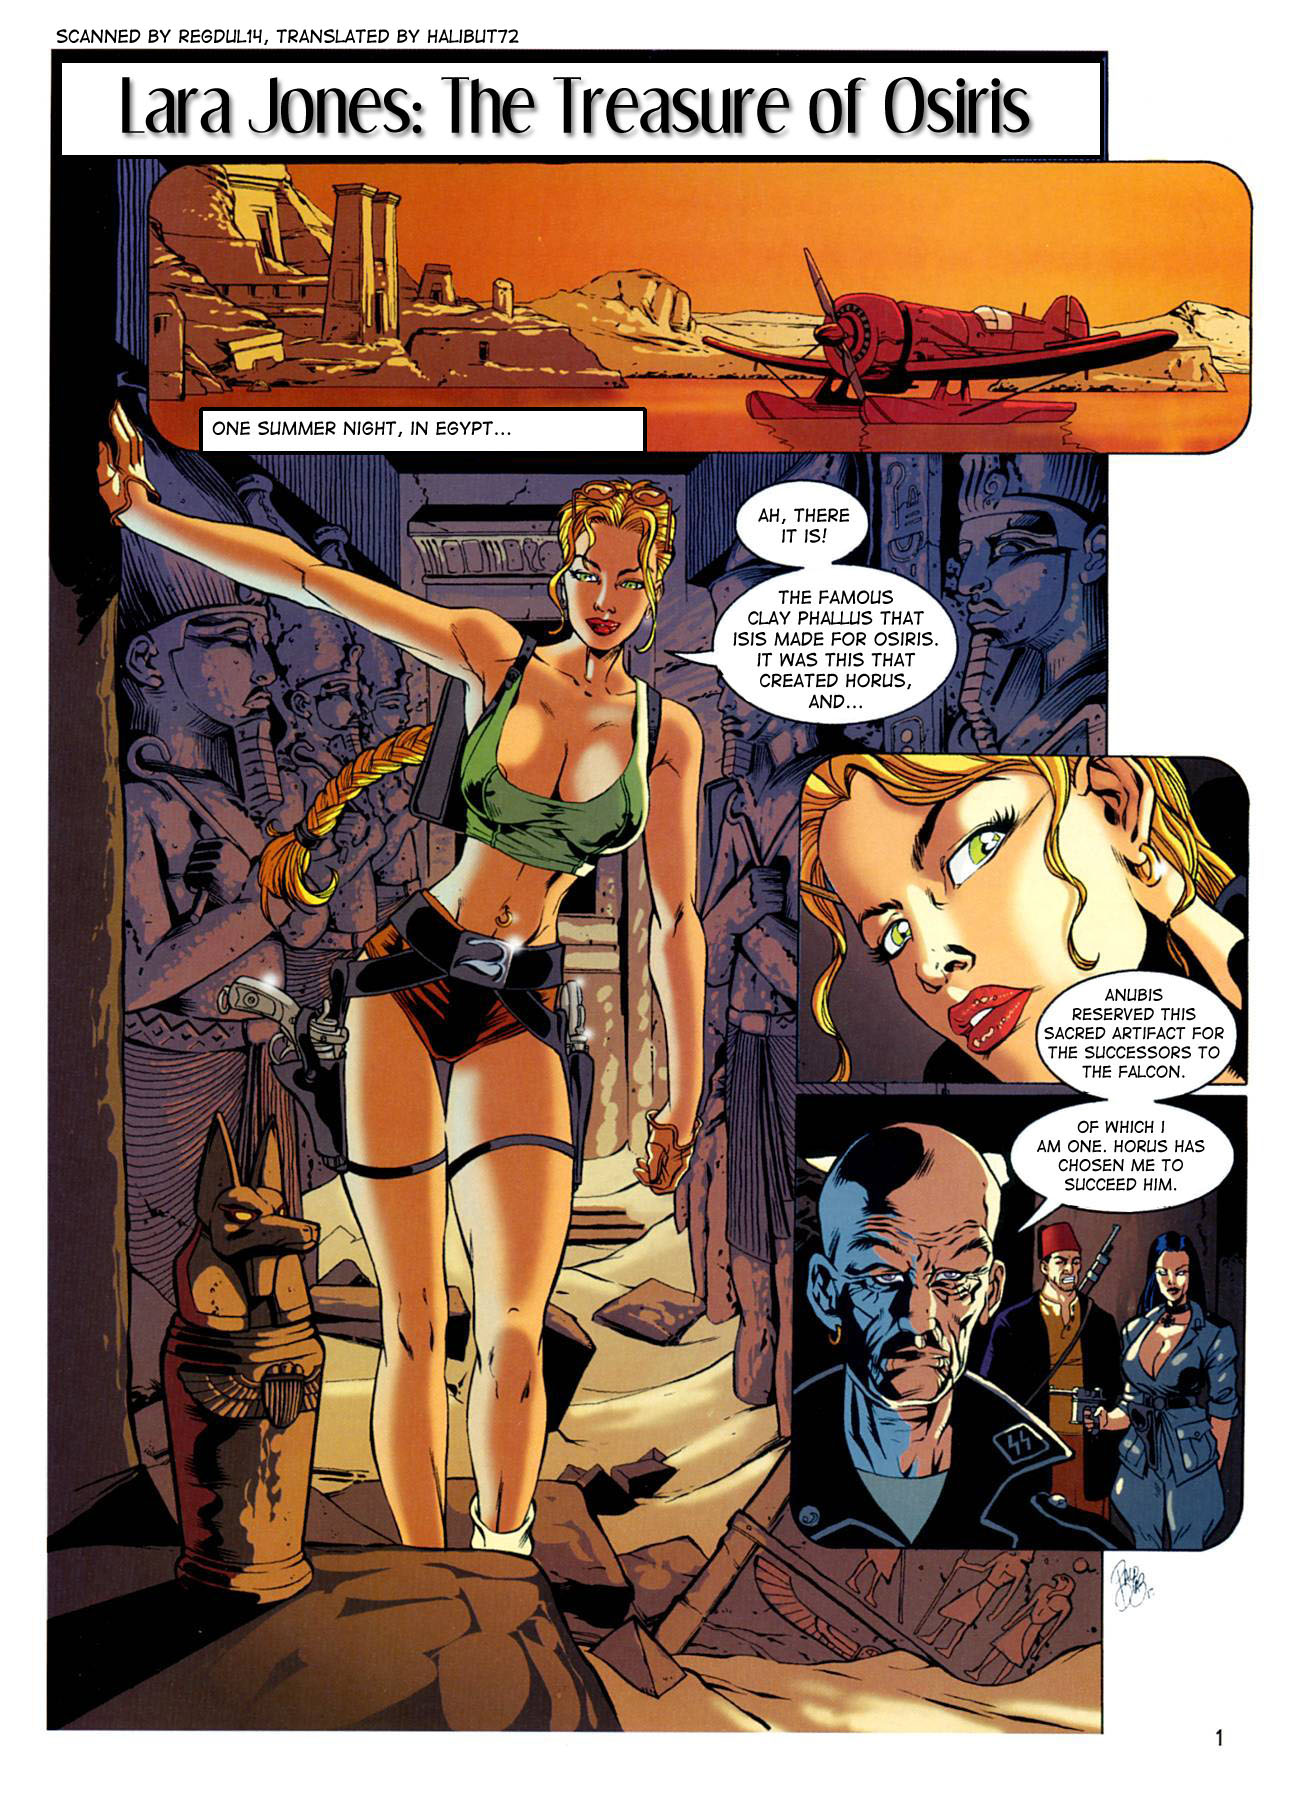 The Treasure of Osiris- Lara Jones porn comics 8 muses